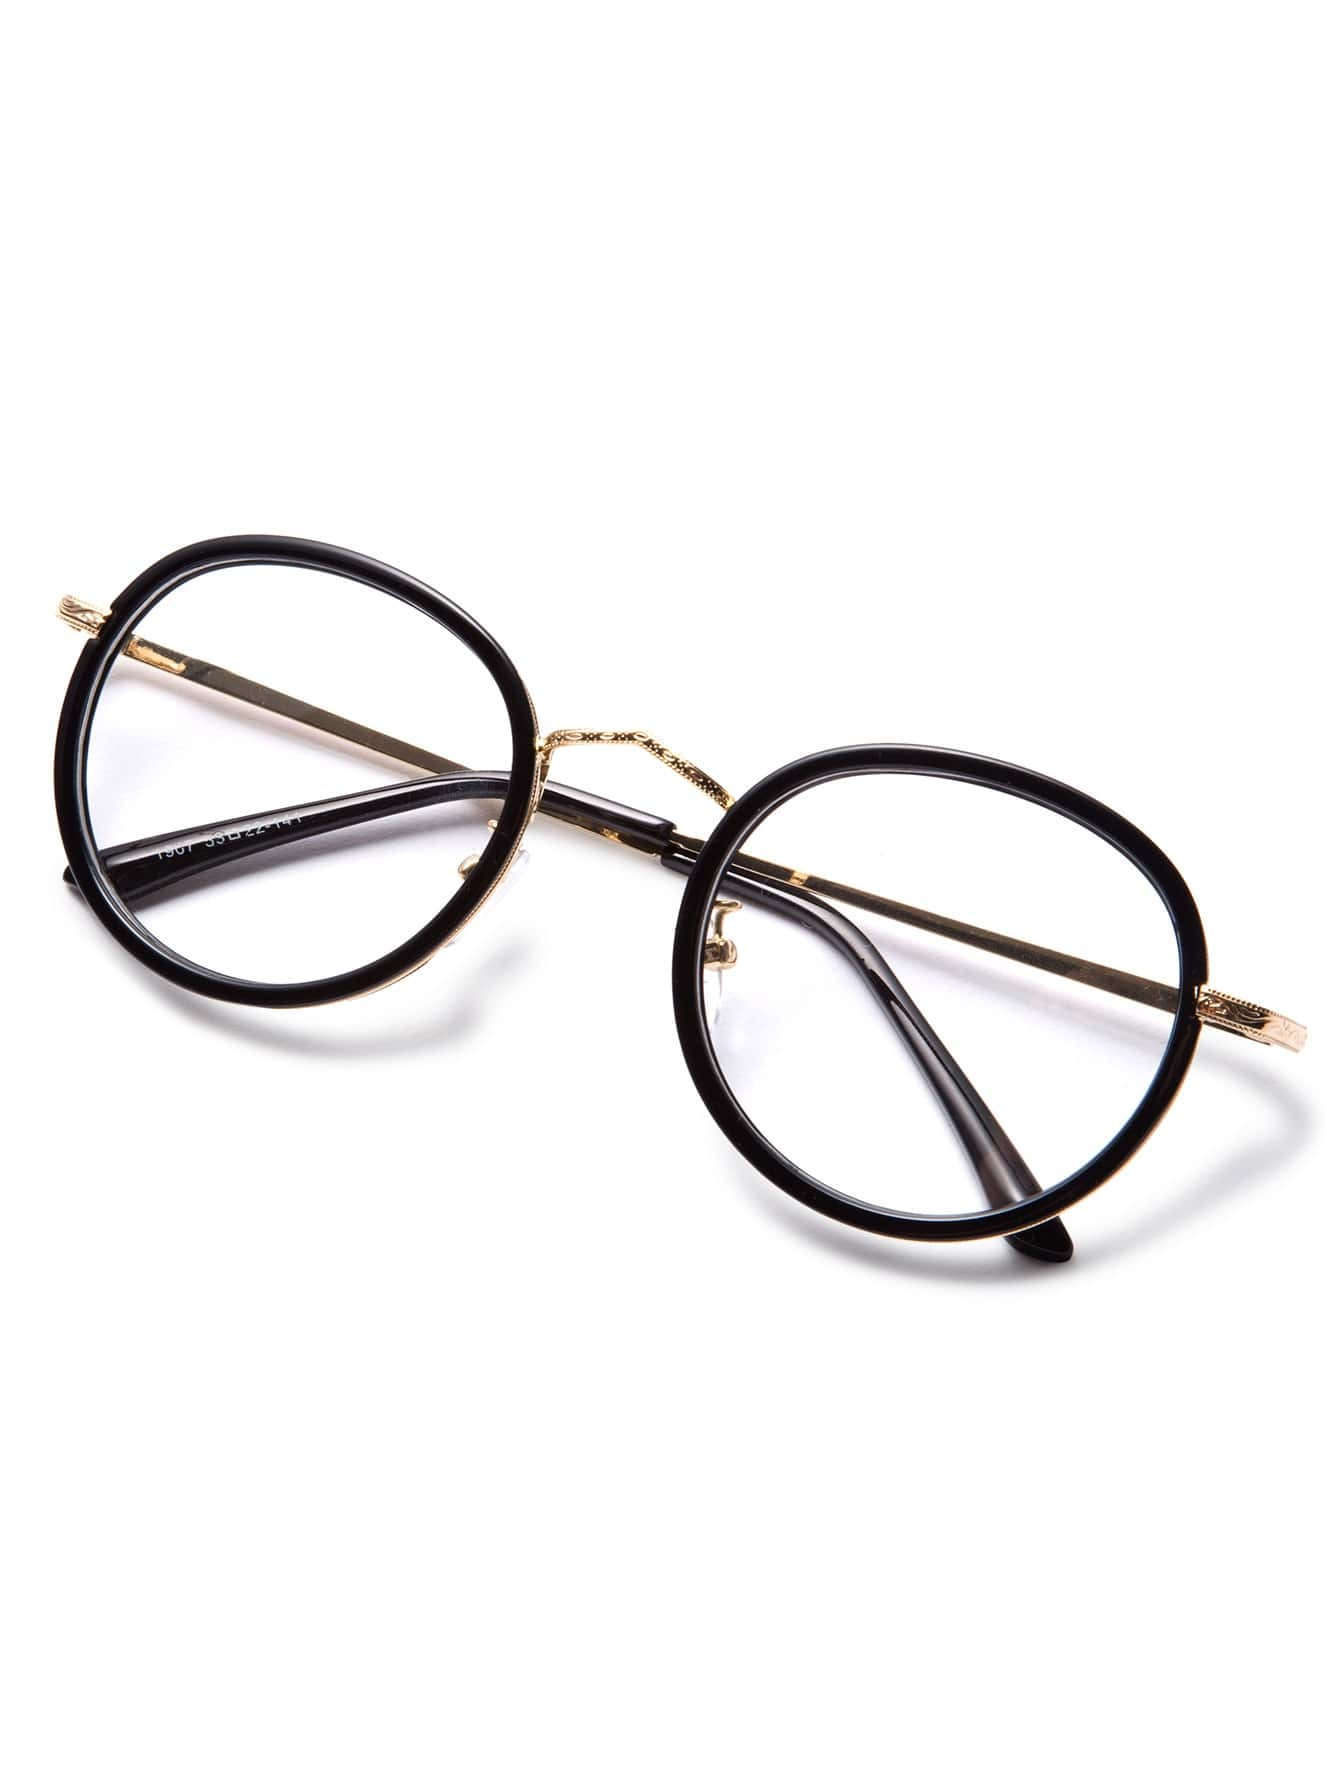 Wire Frame Glasses Vs Plastic : Black Plastic Frame Metal Arm Round Glasses -SheIn(Sheinside)